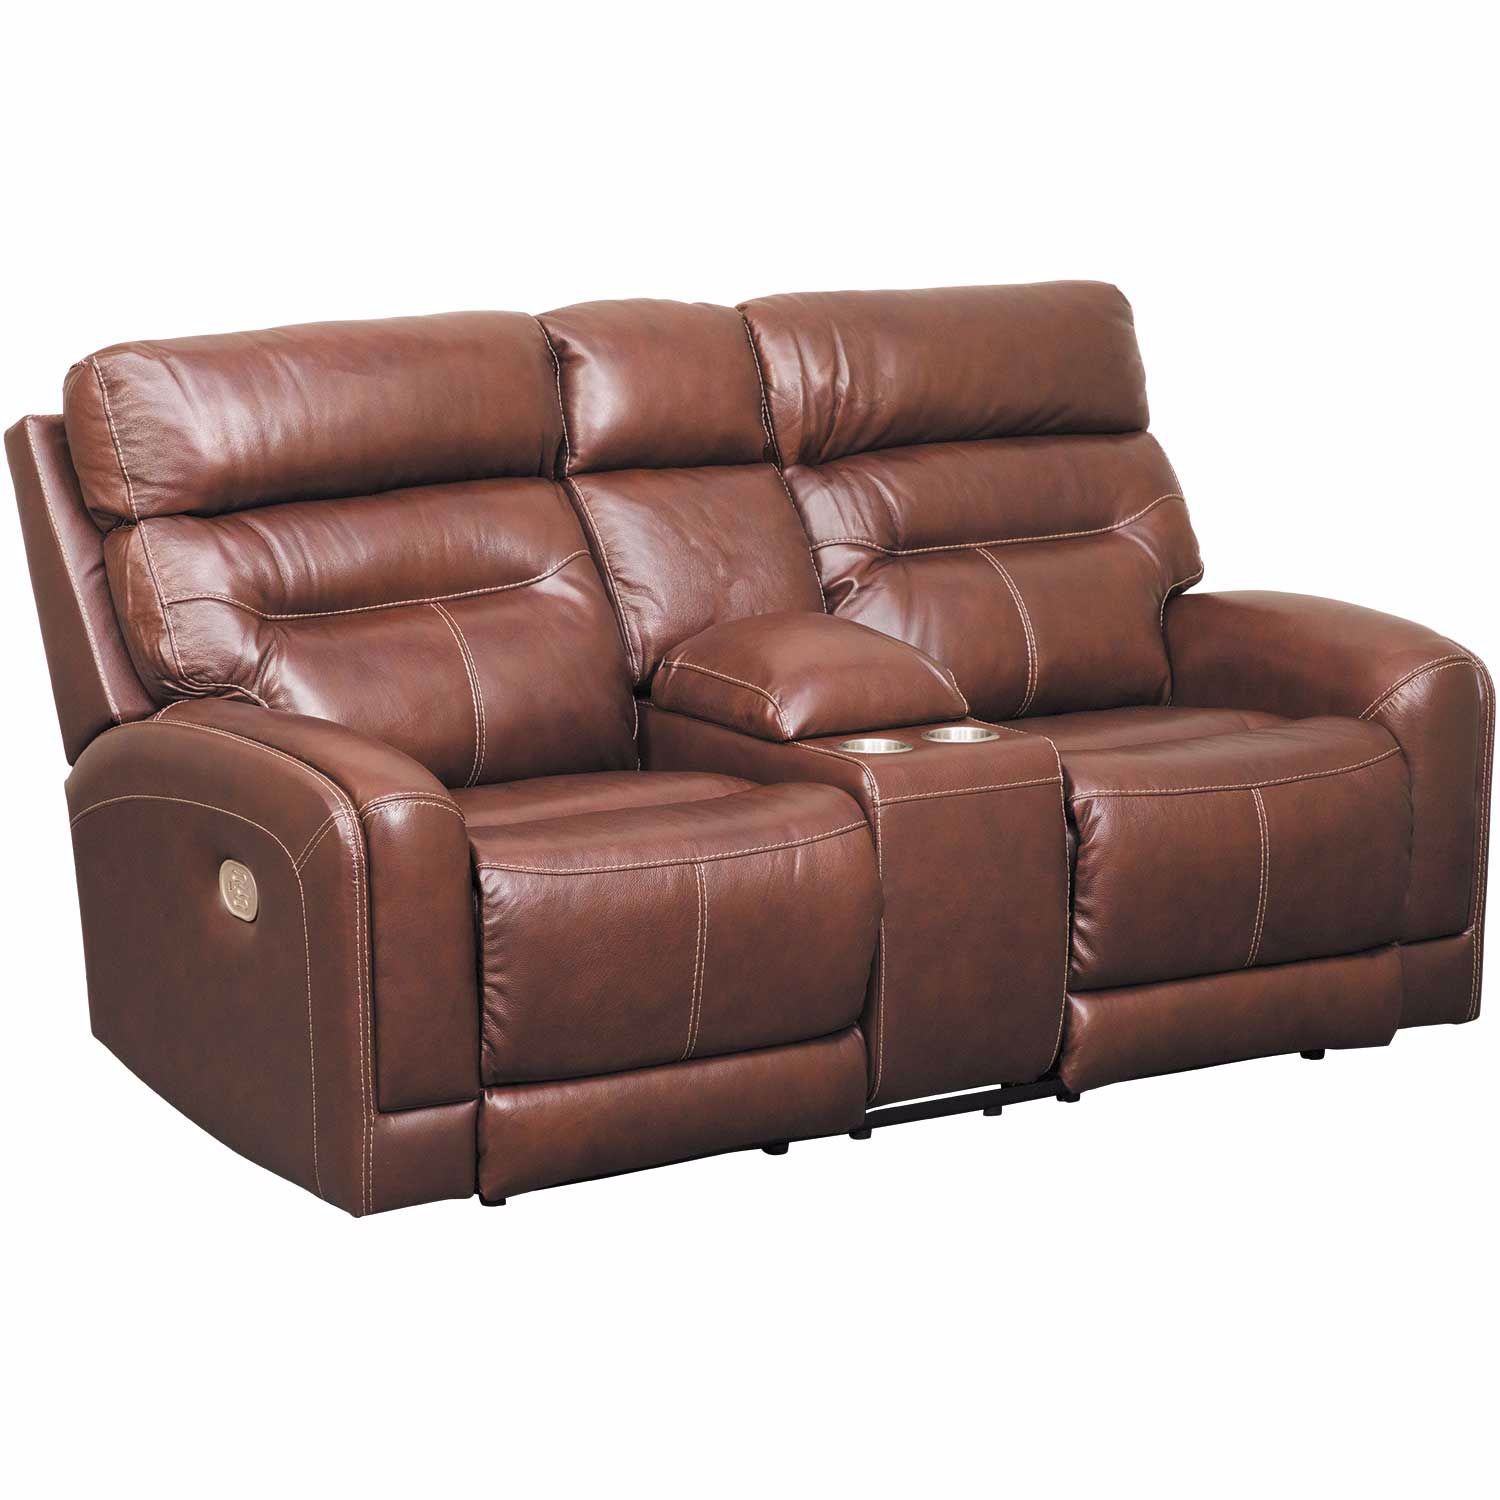 Excellent Sessom Leather Power Reclining Console Loveseat With Adjustable Headrest And Lumbar Ibusinesslaw Wood Chair Design Ideas Ibusinesslaworg